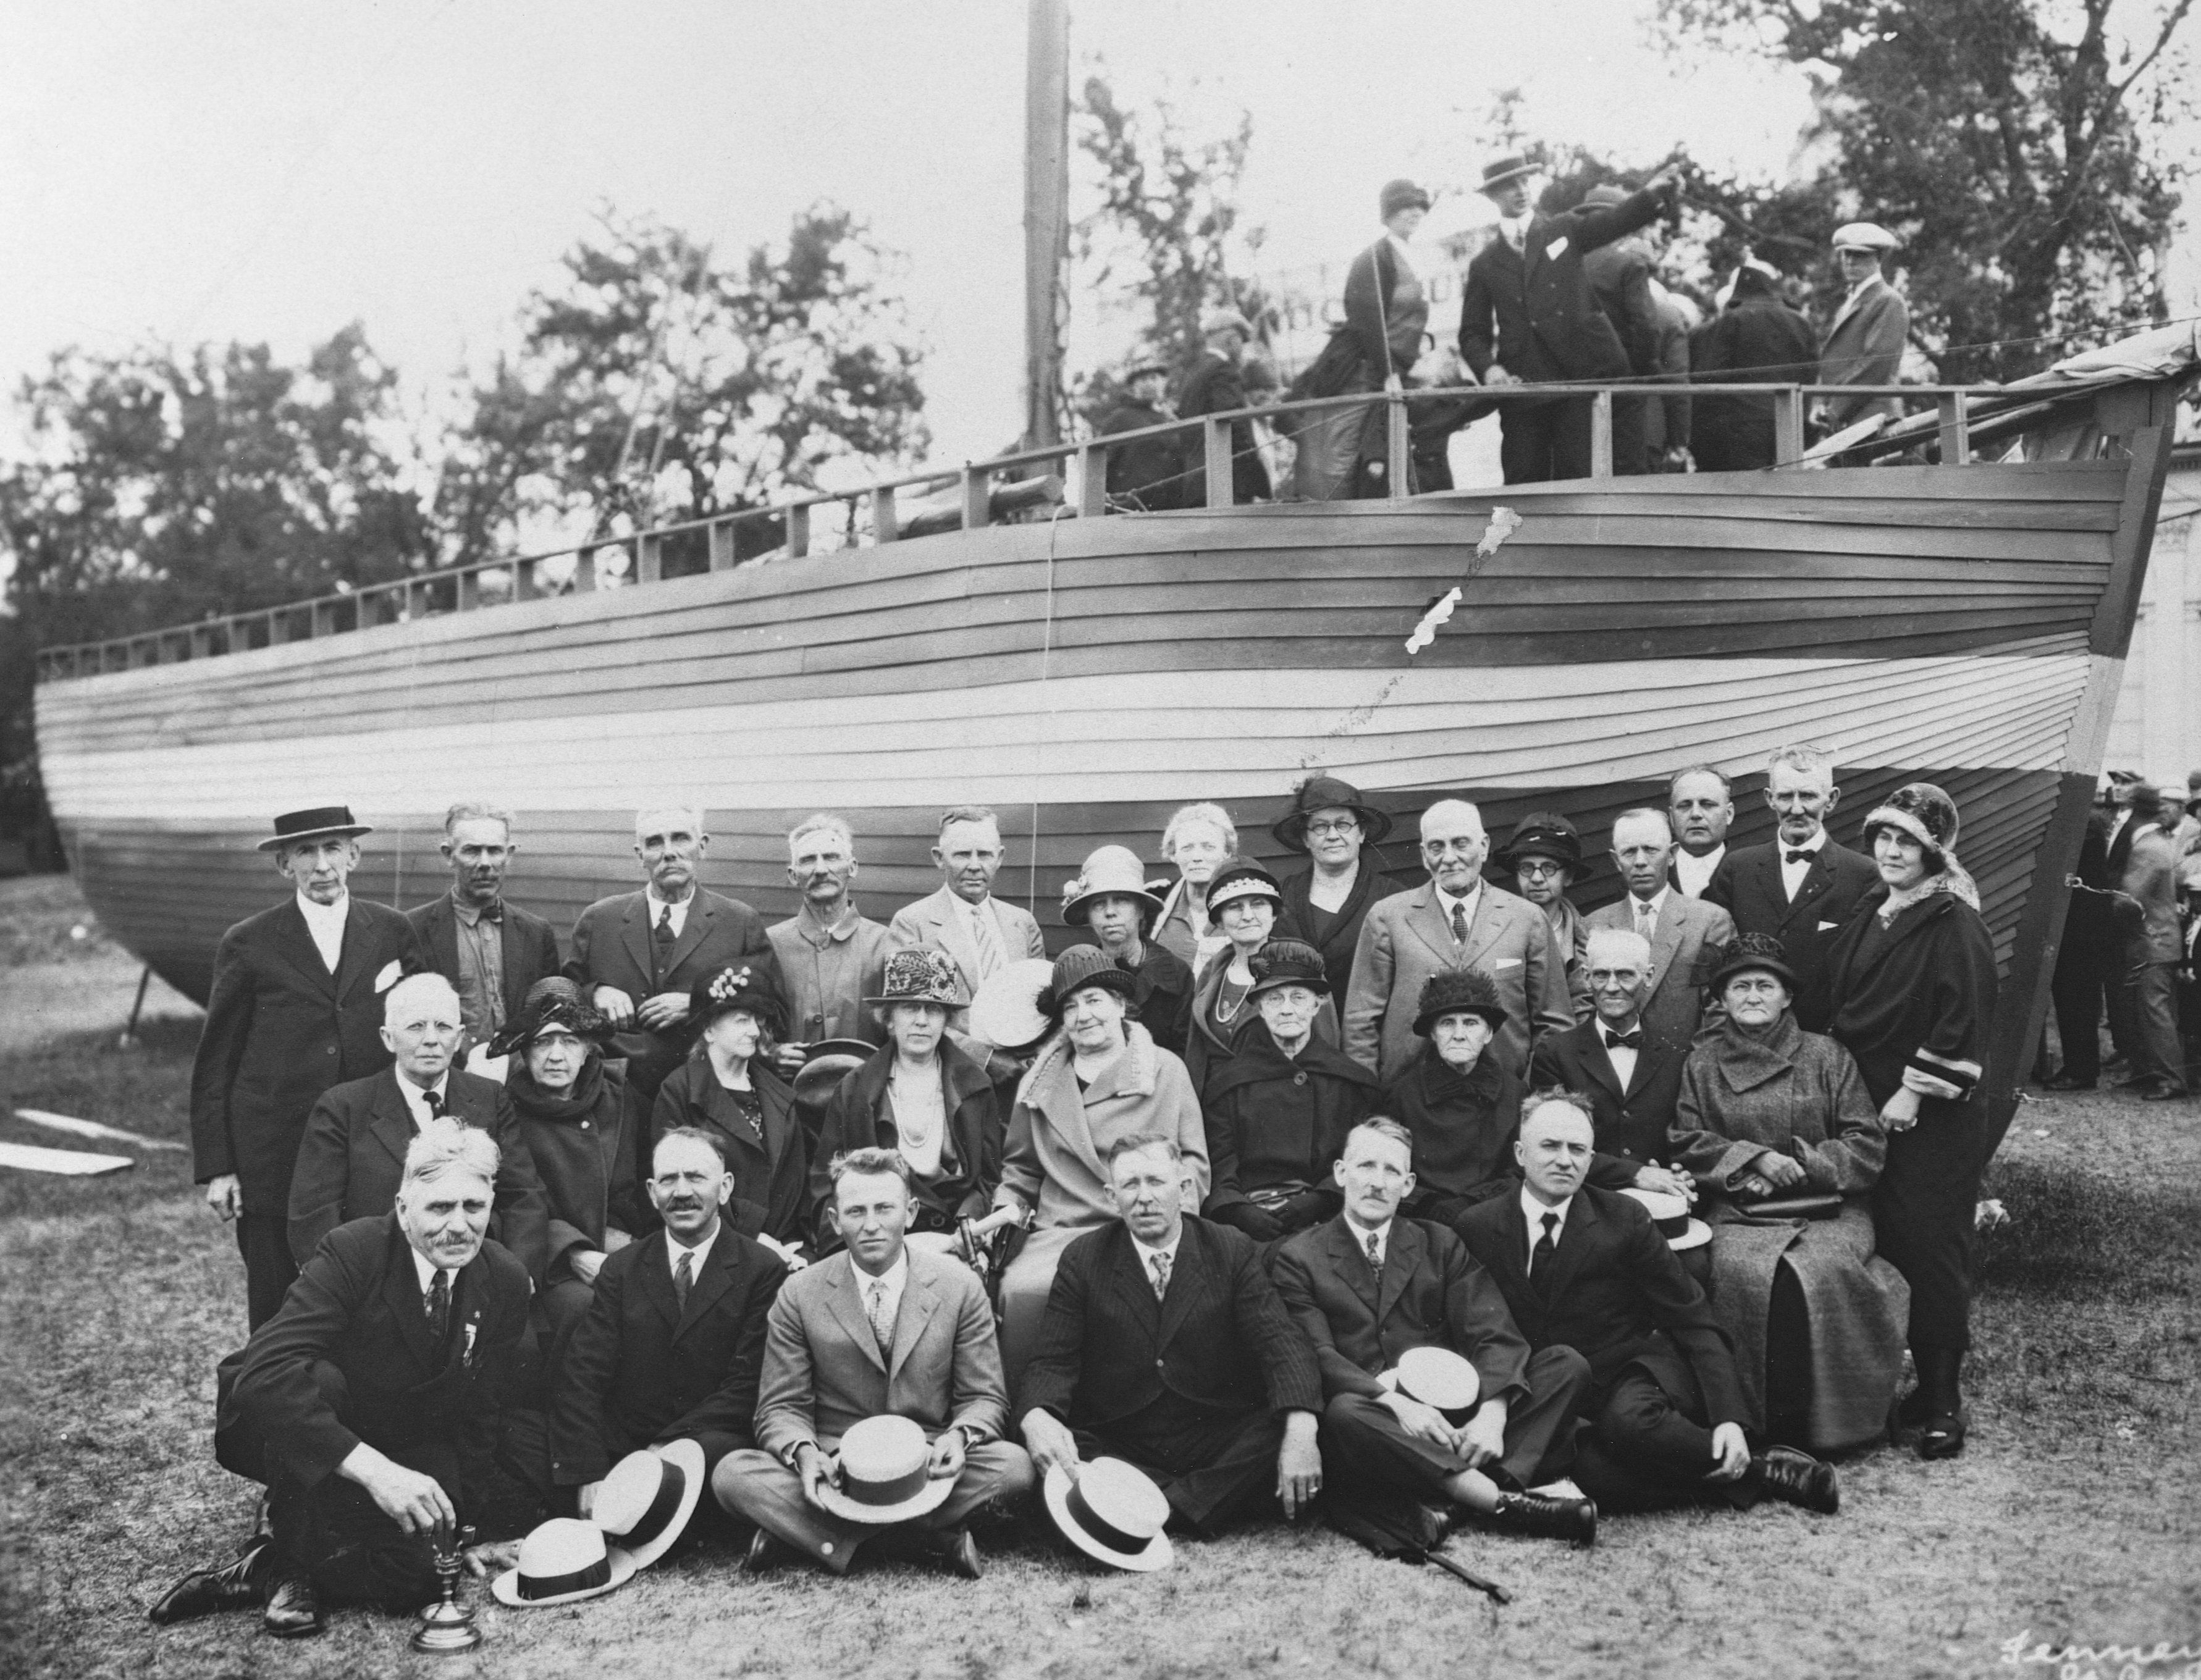 Descendants of Norwegian immigrants poseat the Minnesota State Fairgrounds by the sloop on which their ancestors came t